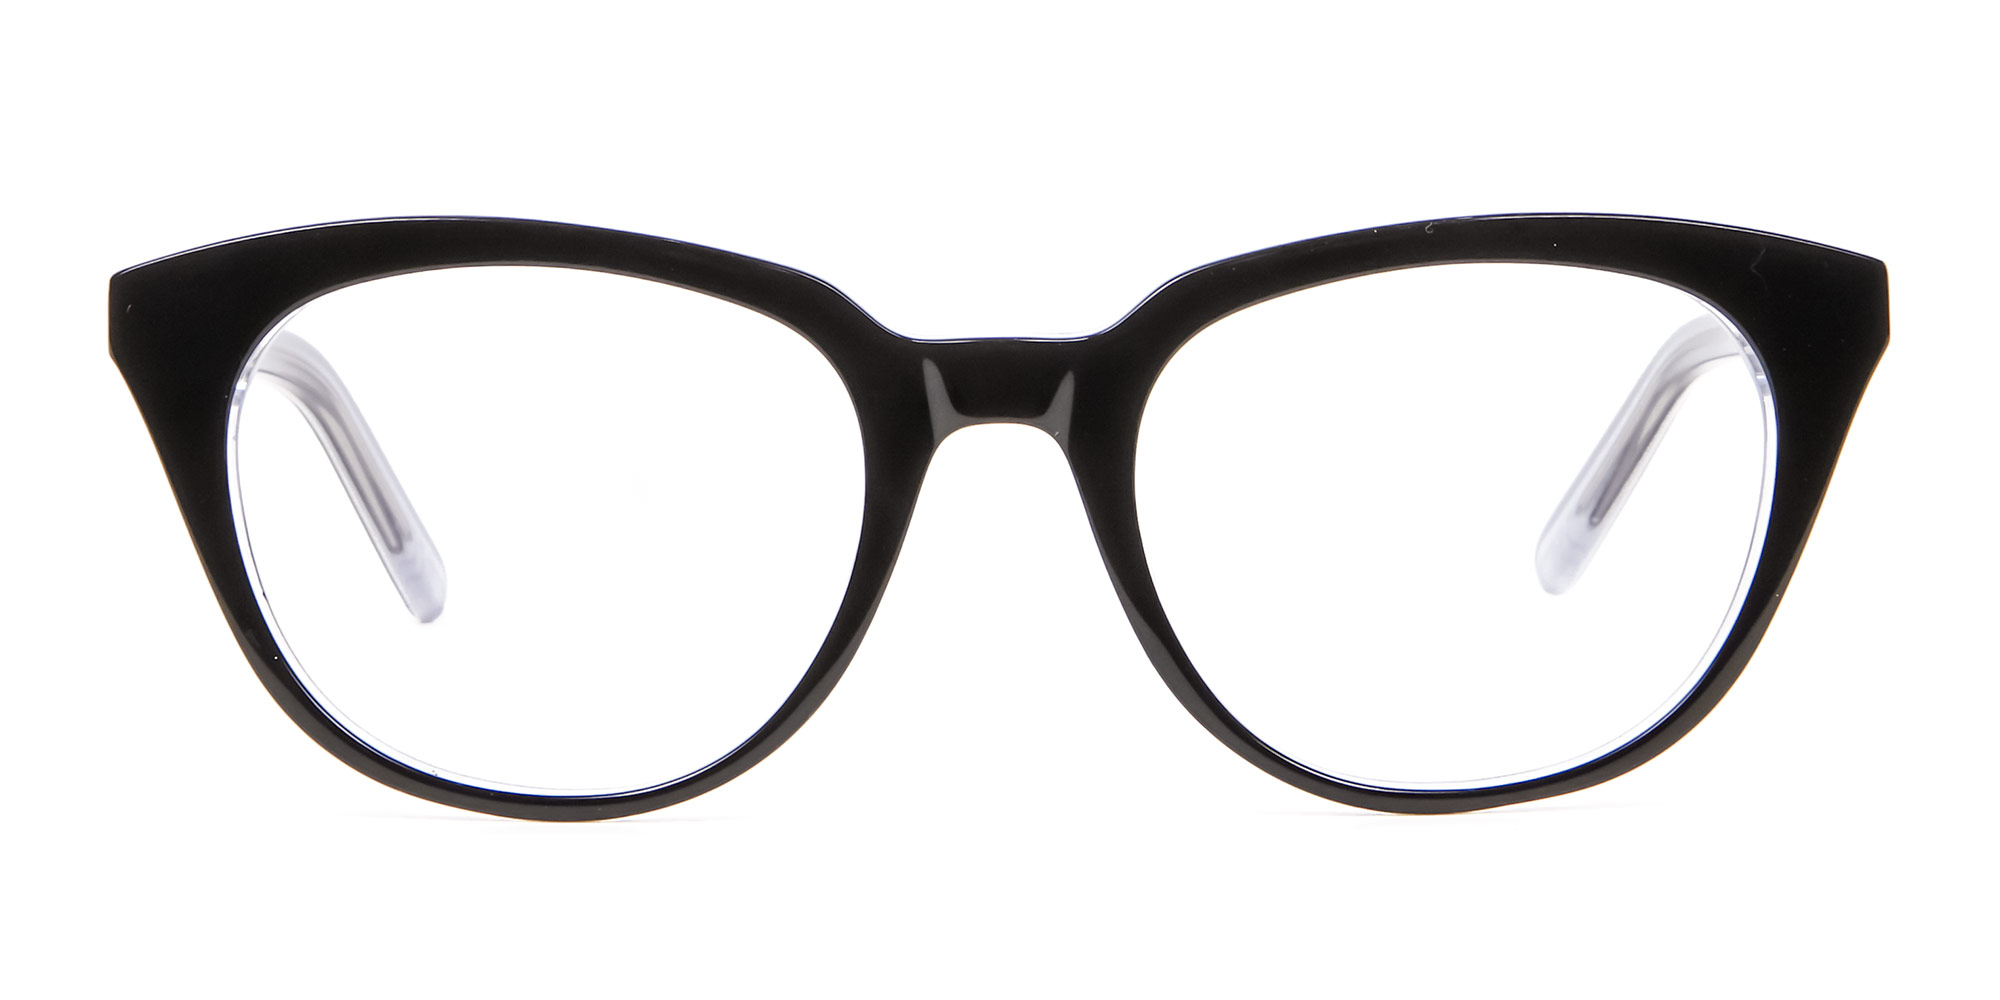 Black and White Cat Eye Glasses for diamond face shape